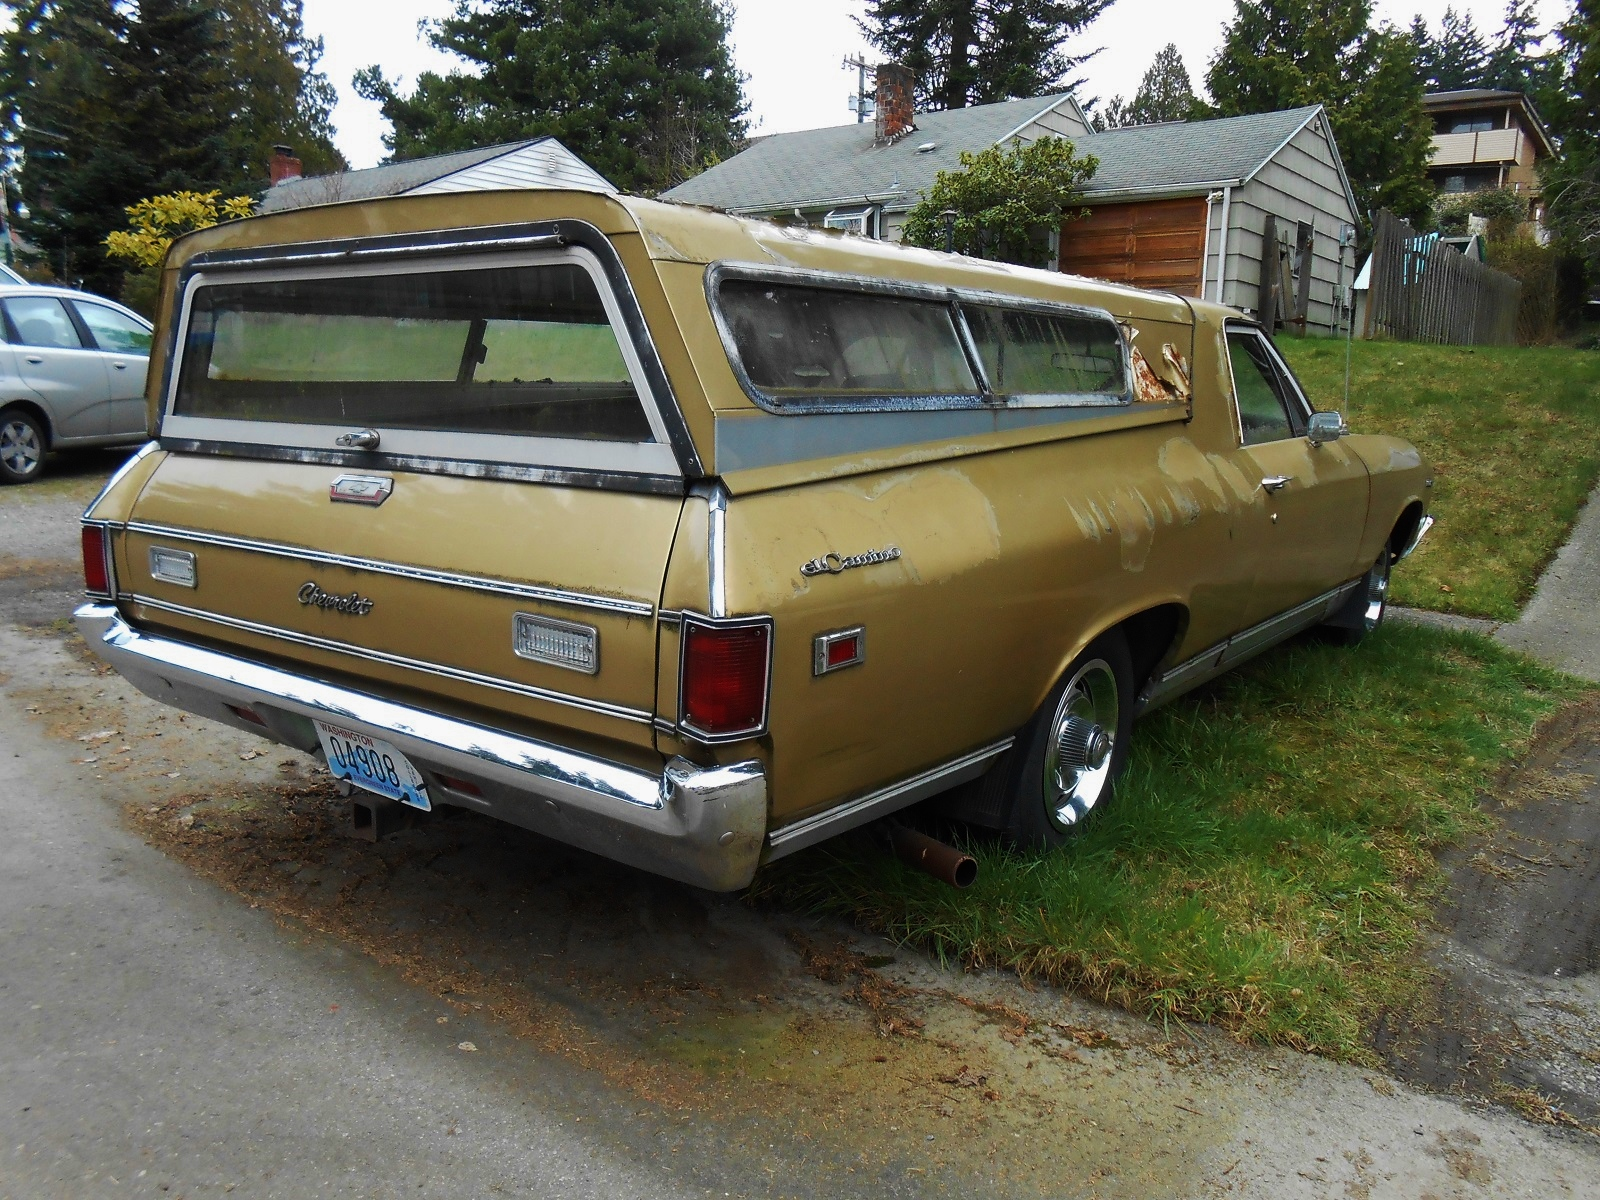 Seattles Parked Cars 1968 Chevrolet El Camino Chevy This Though Is A Little More Plain The Two Tone And Rally Wheels Look Great